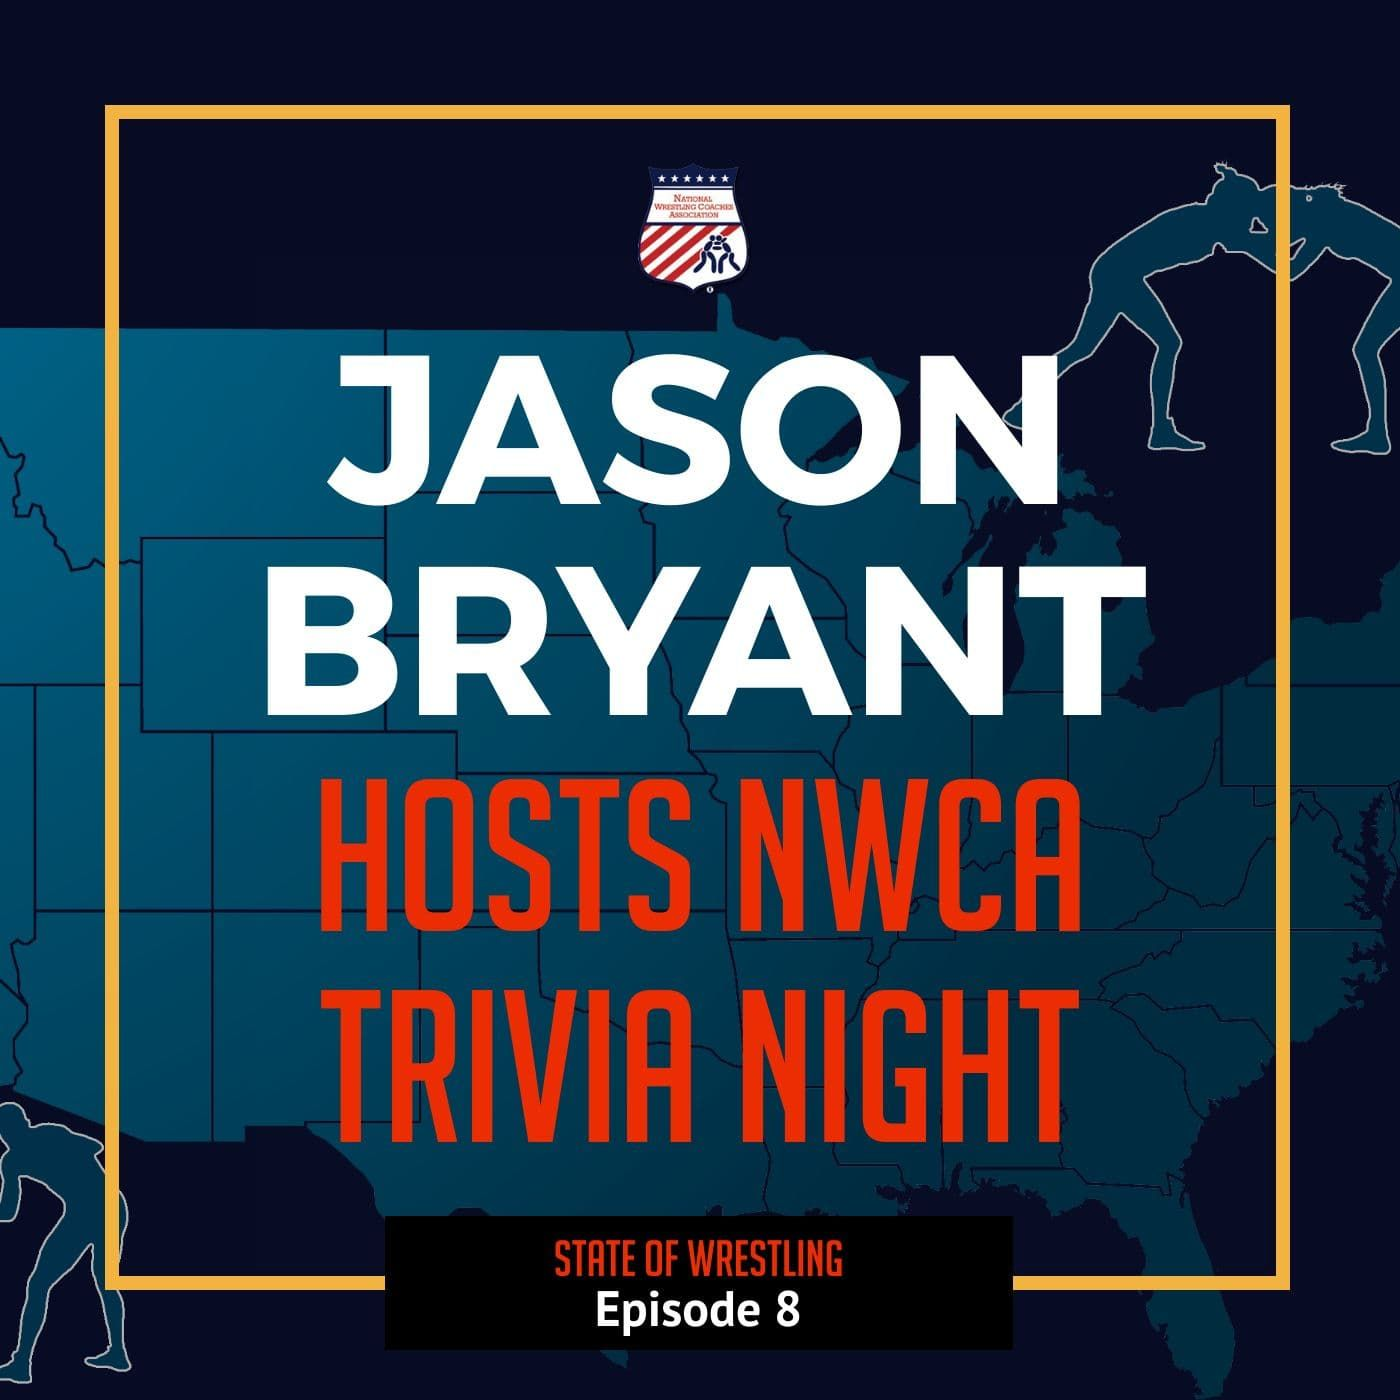 NWCA Webinar Series: Trivia Night #2 hosted by Jason Bryant of Mat Talk Online - SOW8